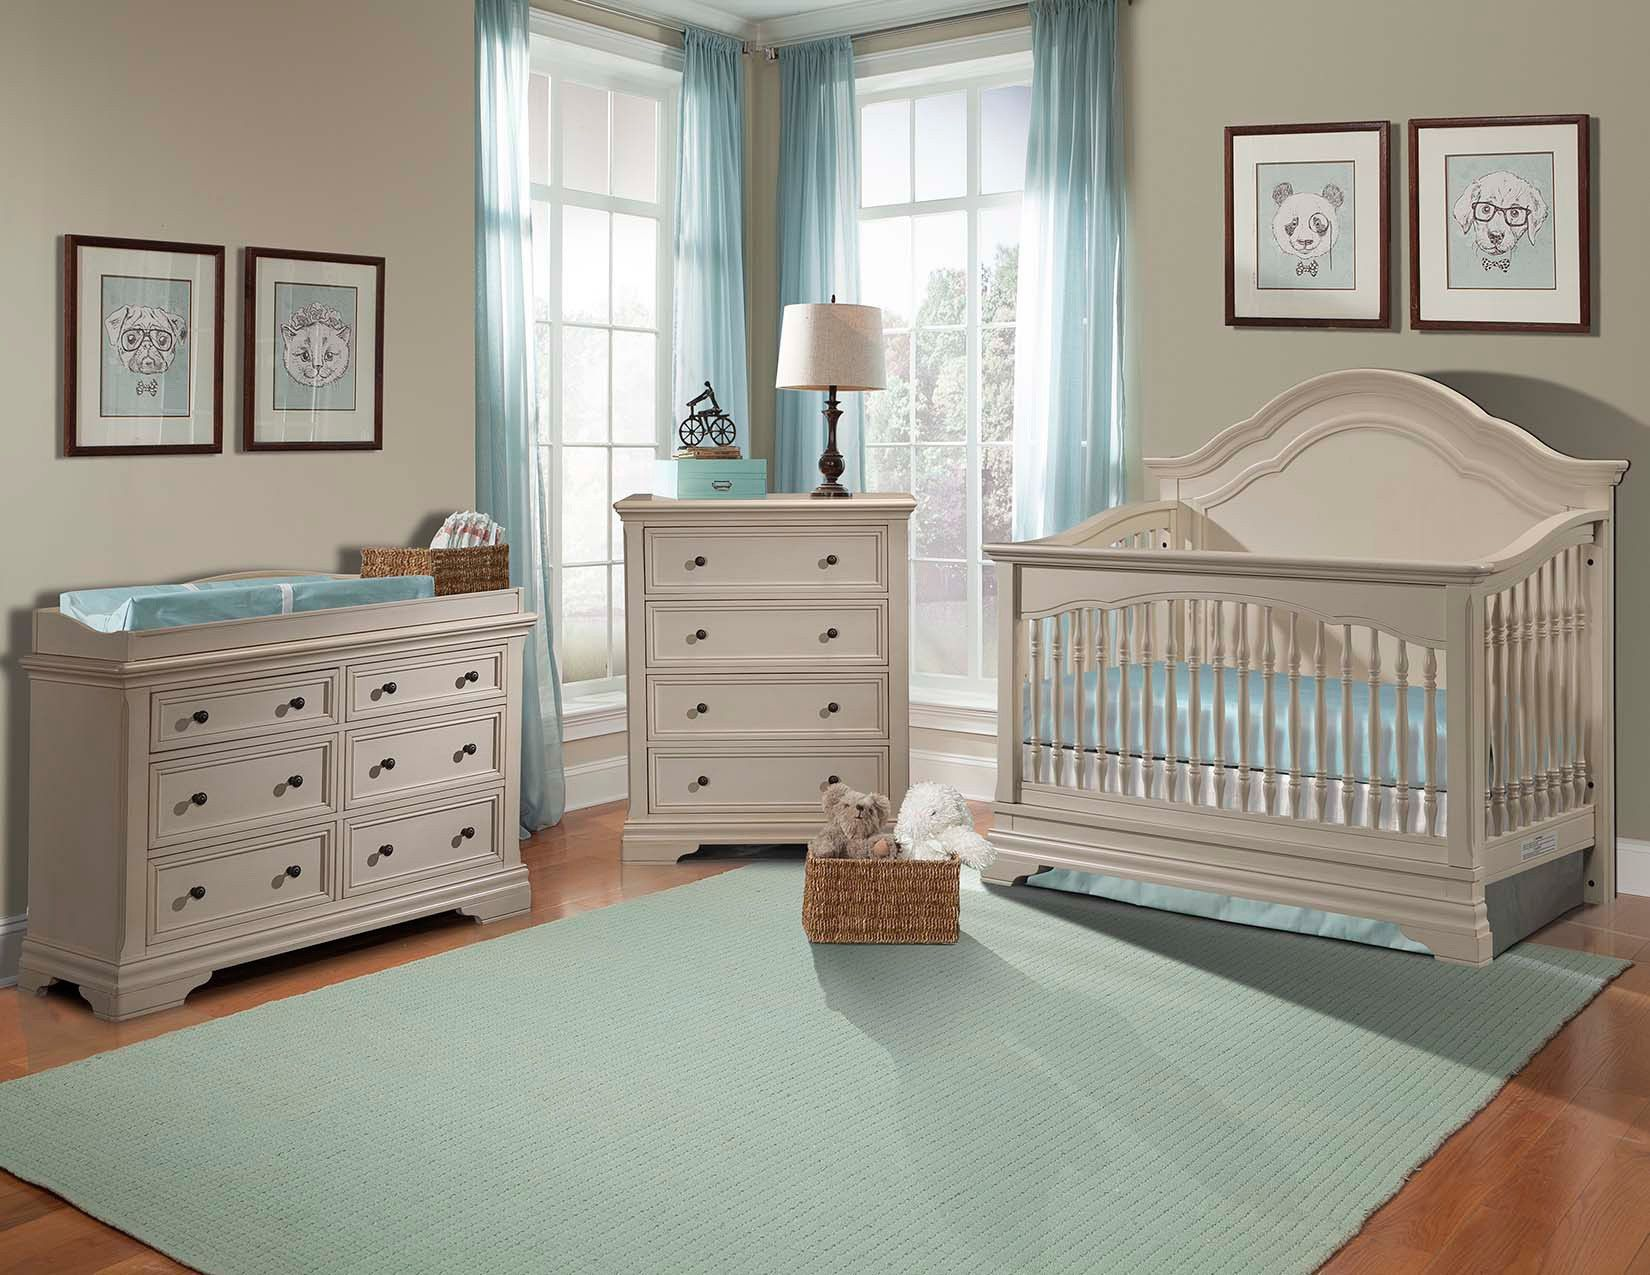 50+ White Baby Room Furniture - Bedroom Window Treatment Ideas Check ...